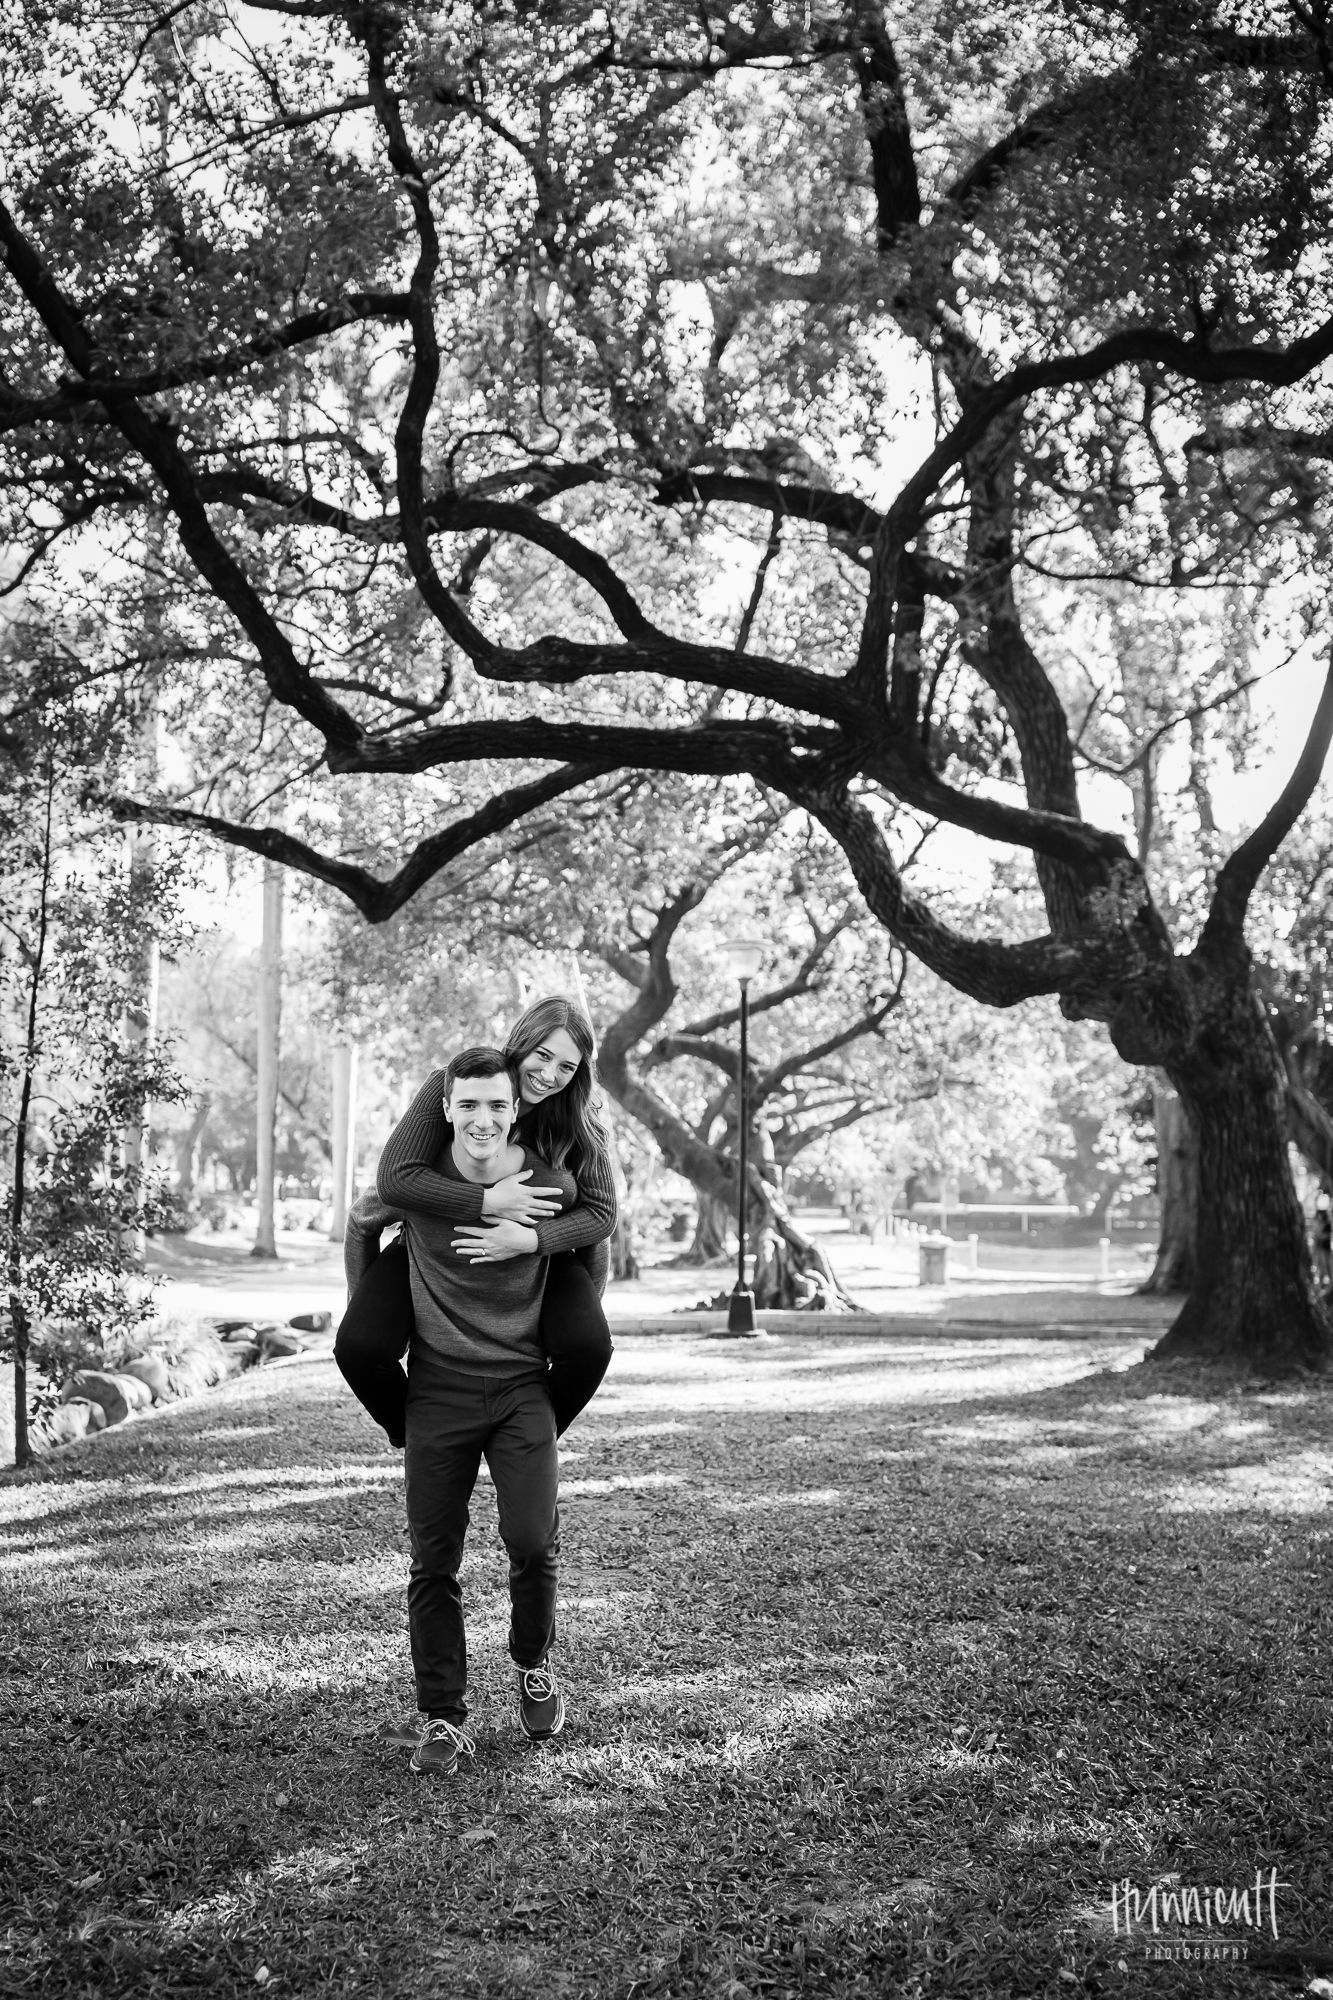 Outdoor-Cultural-Lifestyle-Couples-Photography-Taichung-Taiwan-Rebecca-Hunnicutt-Farren-Hunnicutt-Photography-Taichung-Park-19